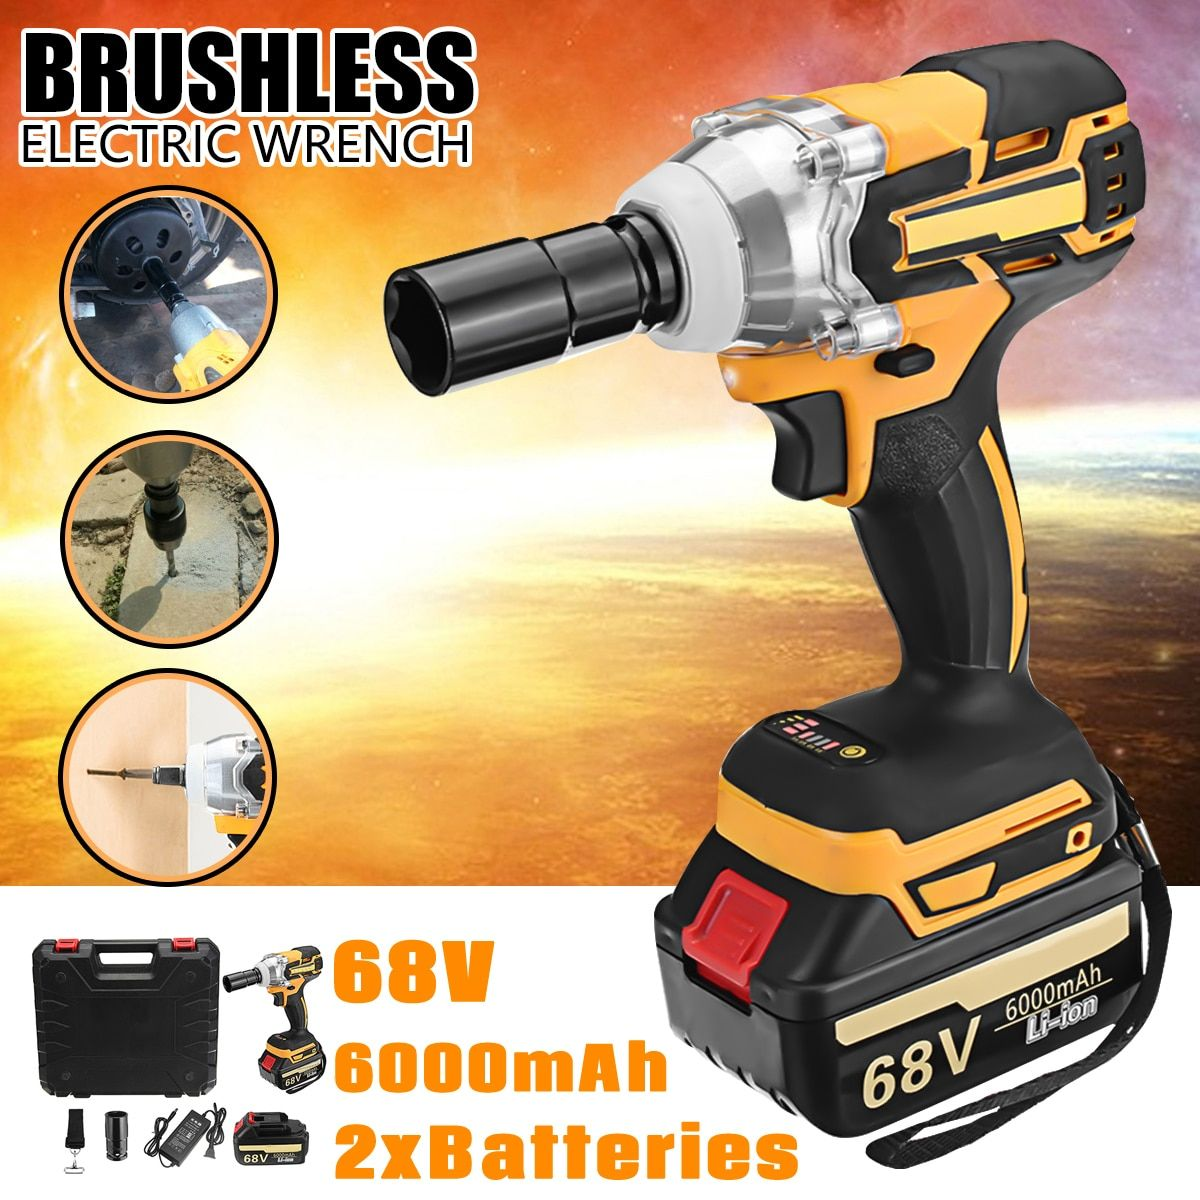 Doersupp 1Pcs 68V 6000mAh Electric Wrench 2 Batteries 1 Charger Brushless Cordless Drive 380 N.M Electric Wrench Power Tools